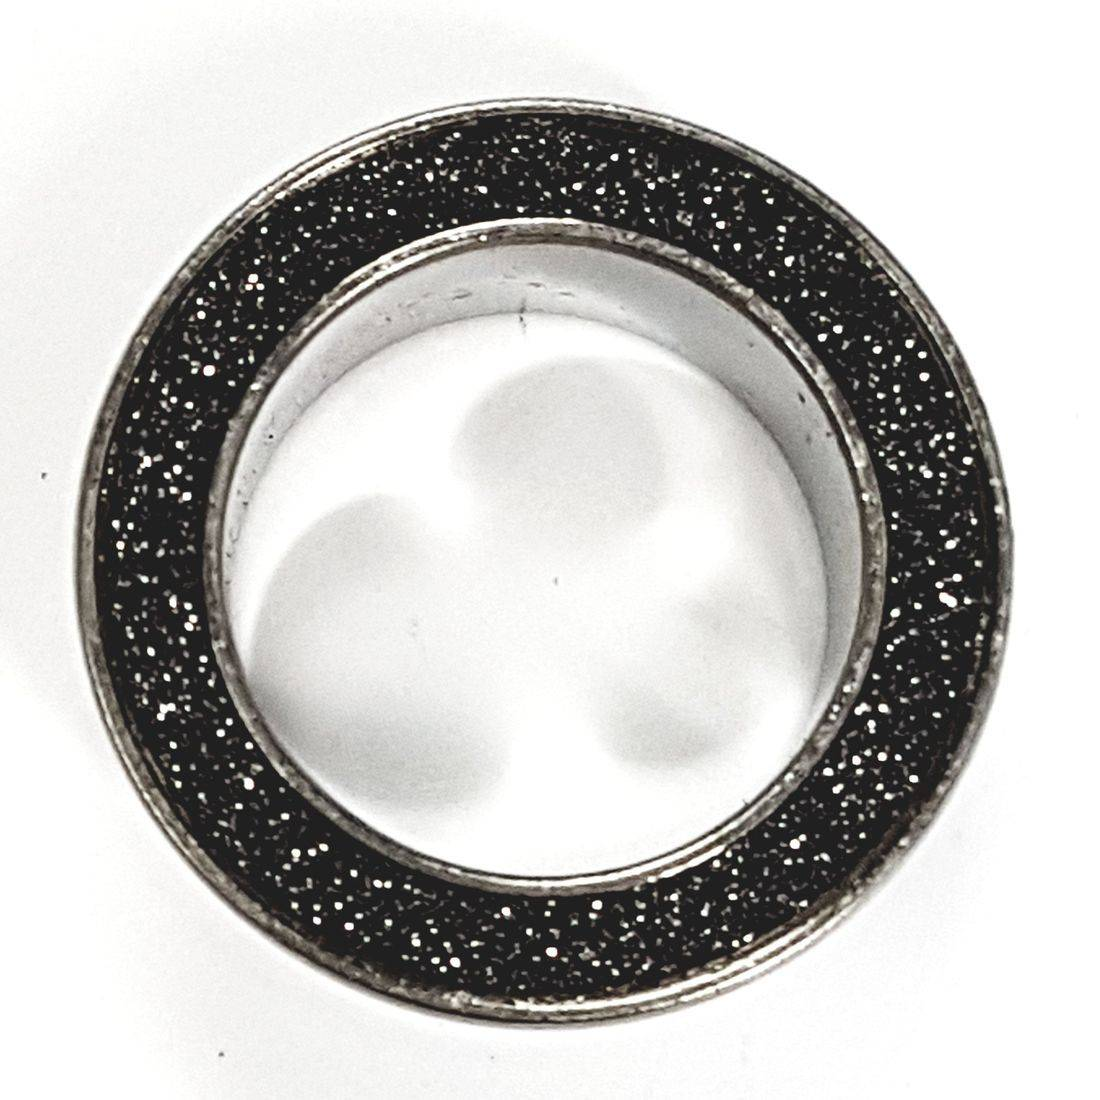 Titanium plugs and tunnels available from kazbah Leicester or kazbah online